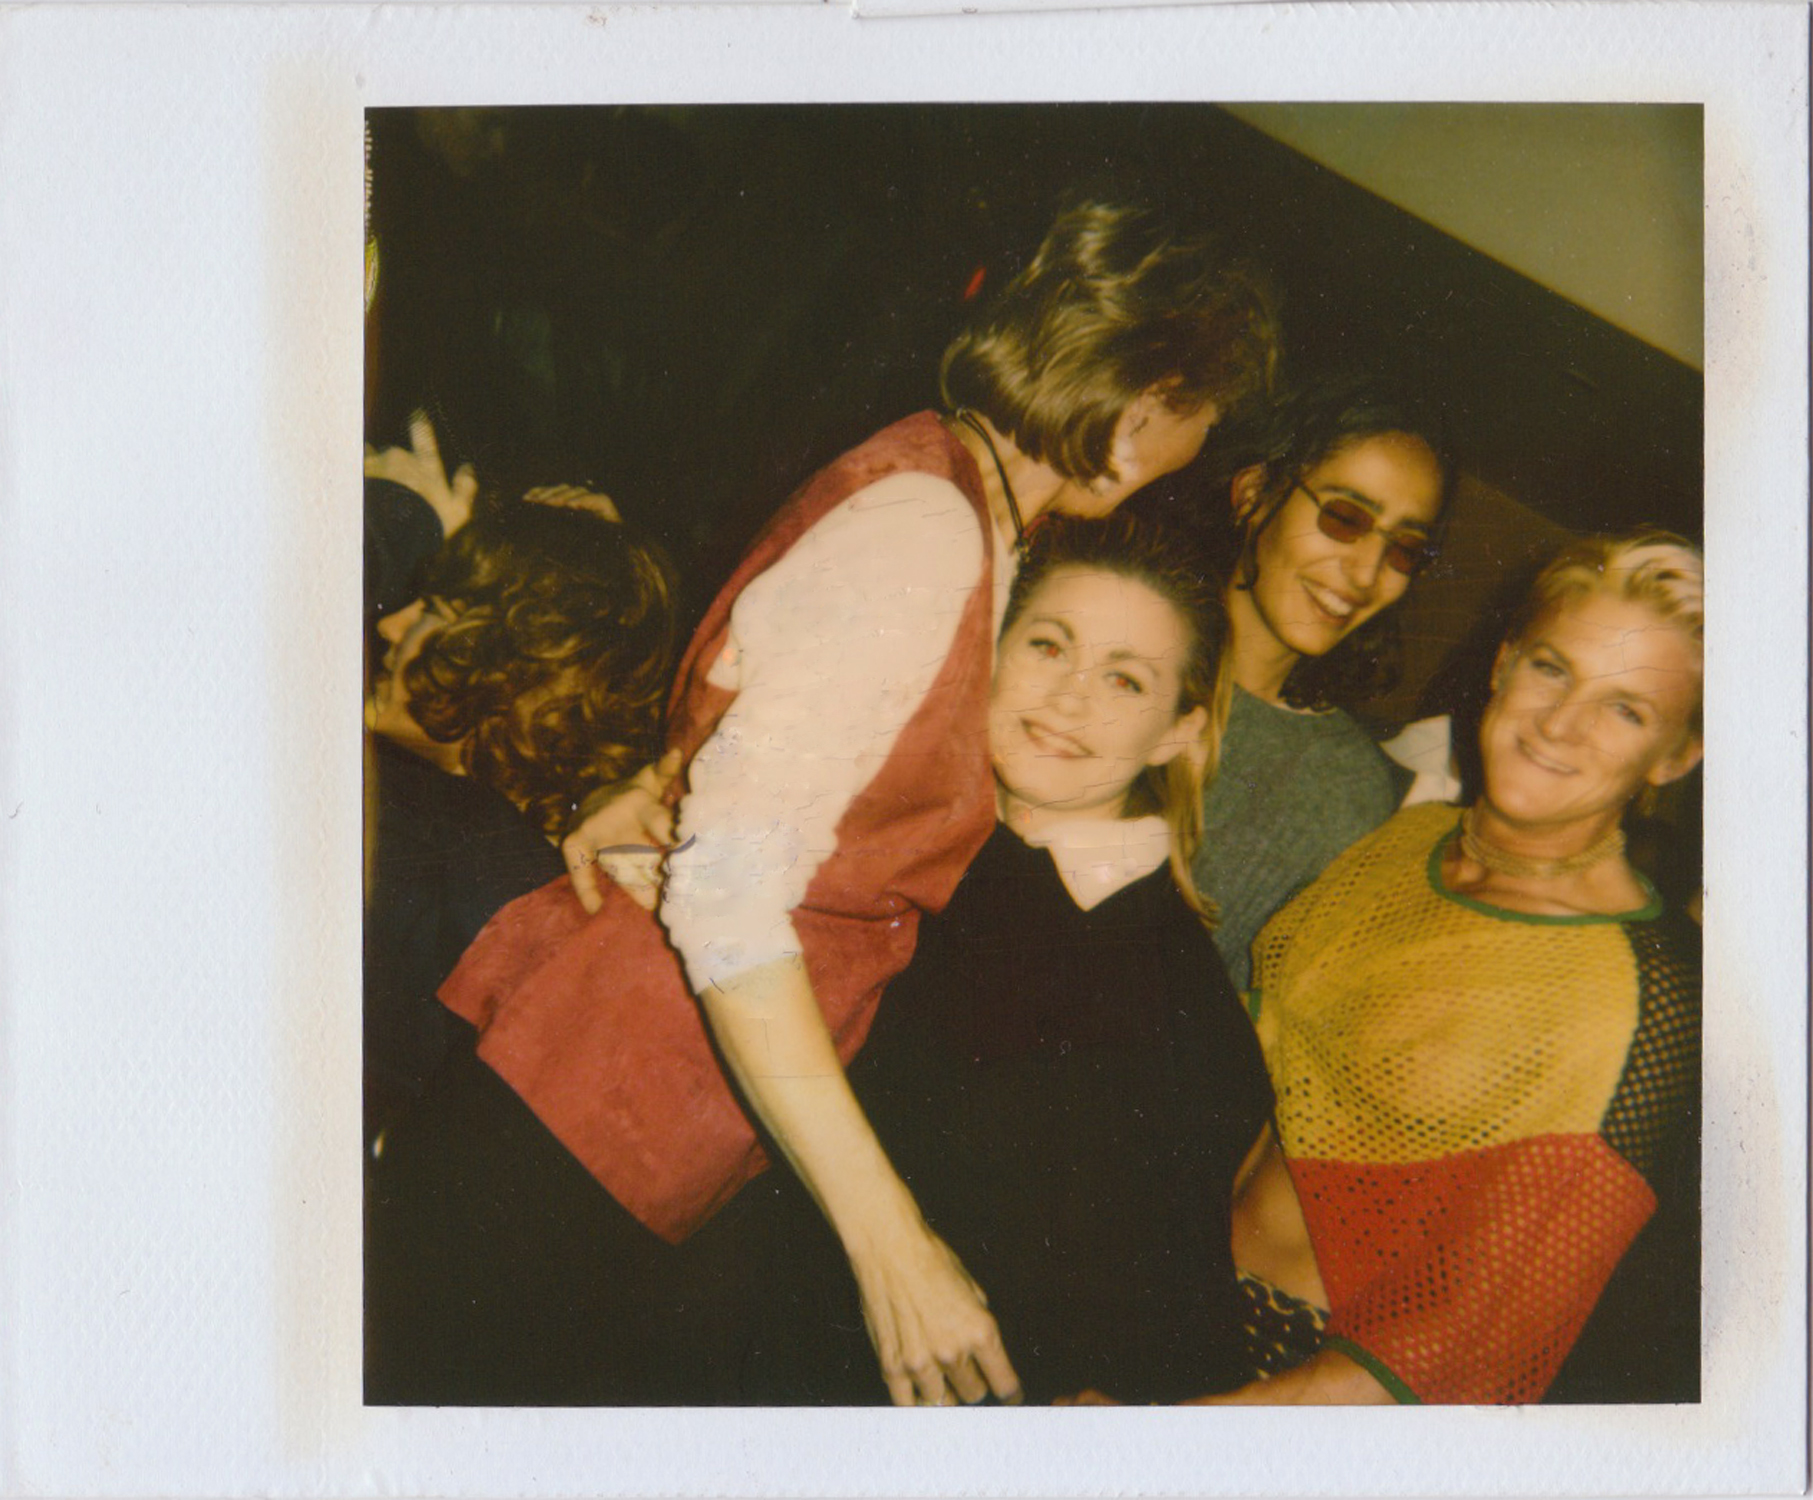 """""""Sundays at Cafe Tabac guests. The woman in sunglasses, Voula Duval, was also a party promoter and the blond, with the mesh top, was a body builder!"""" - Wanda Acosta, 2018. Image courtesy of Wanda Acosta."""